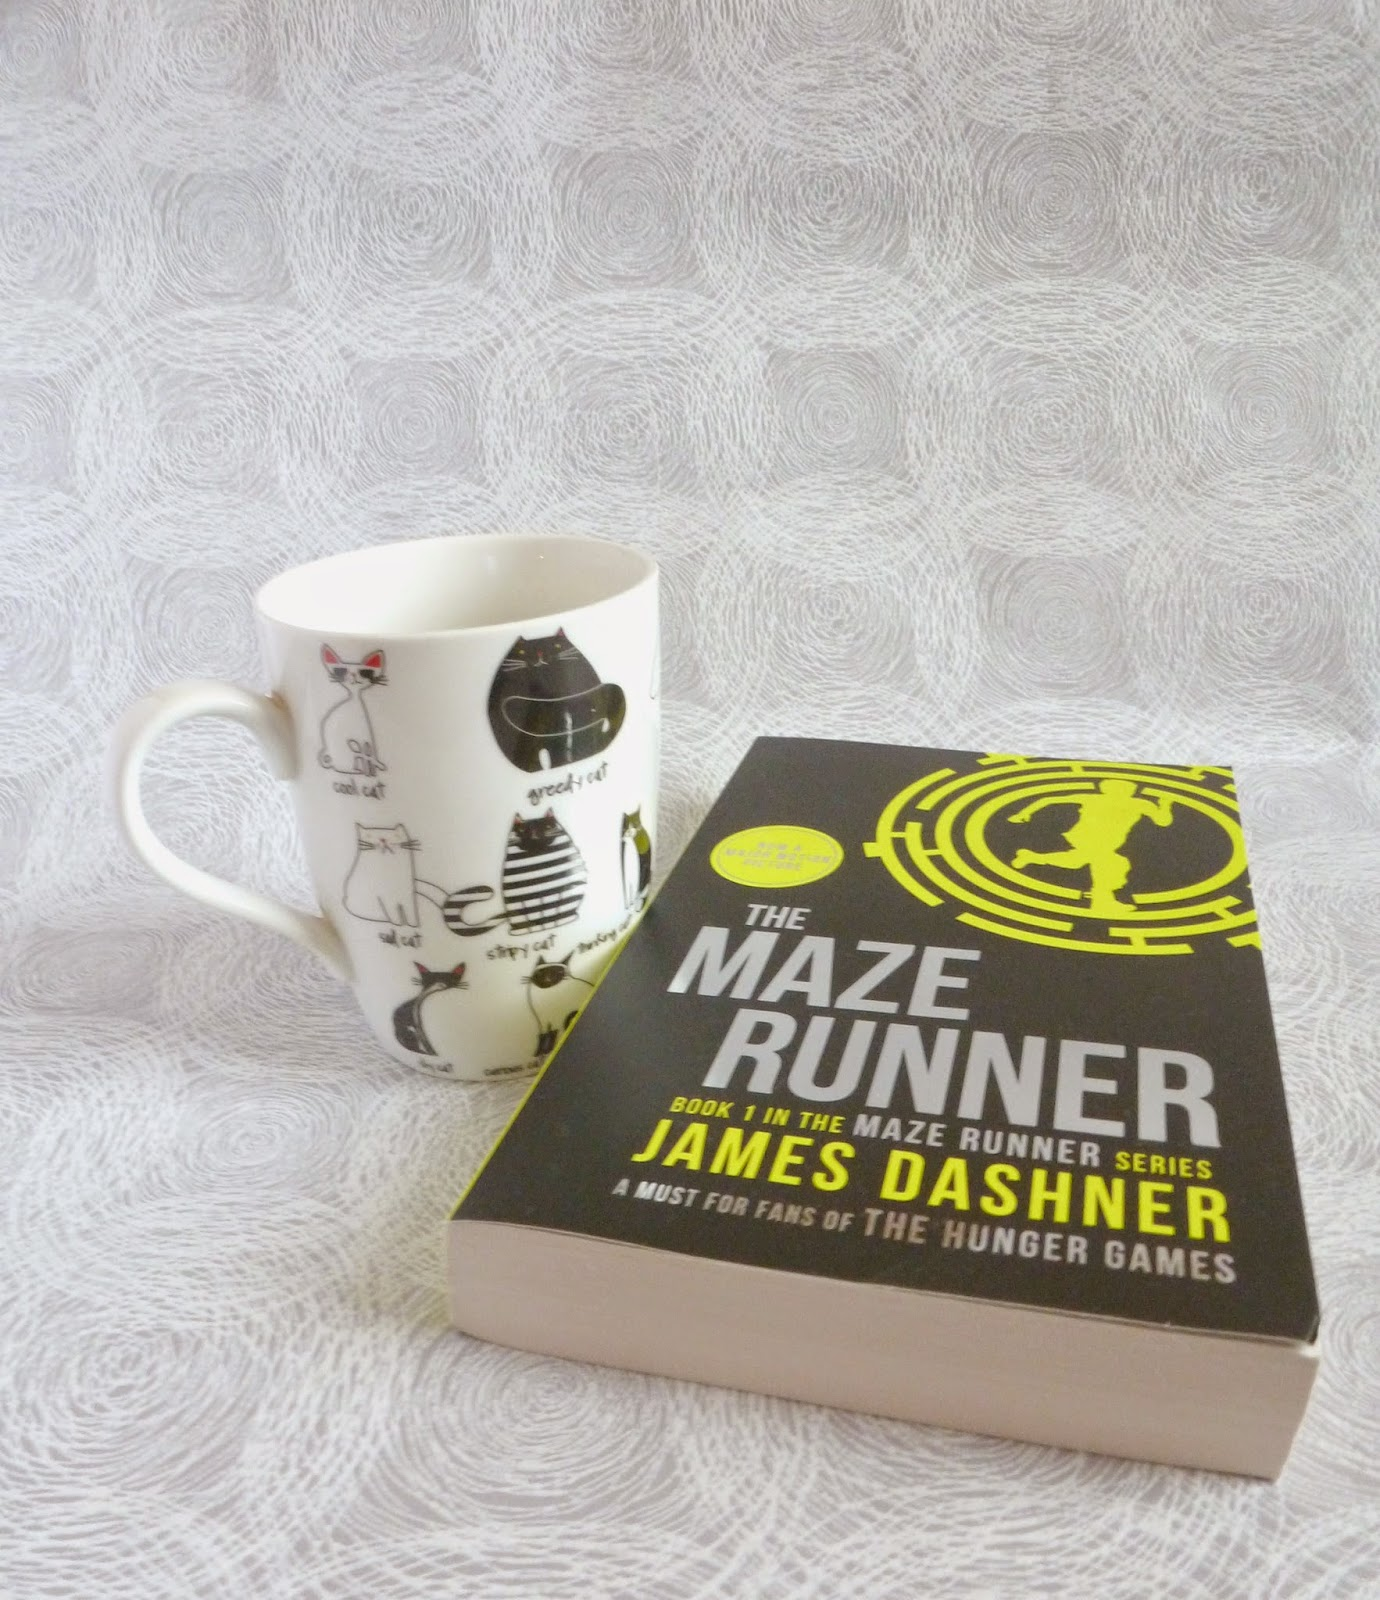 cup of tea in a cat mug and The Maze Runner book by James Dashner